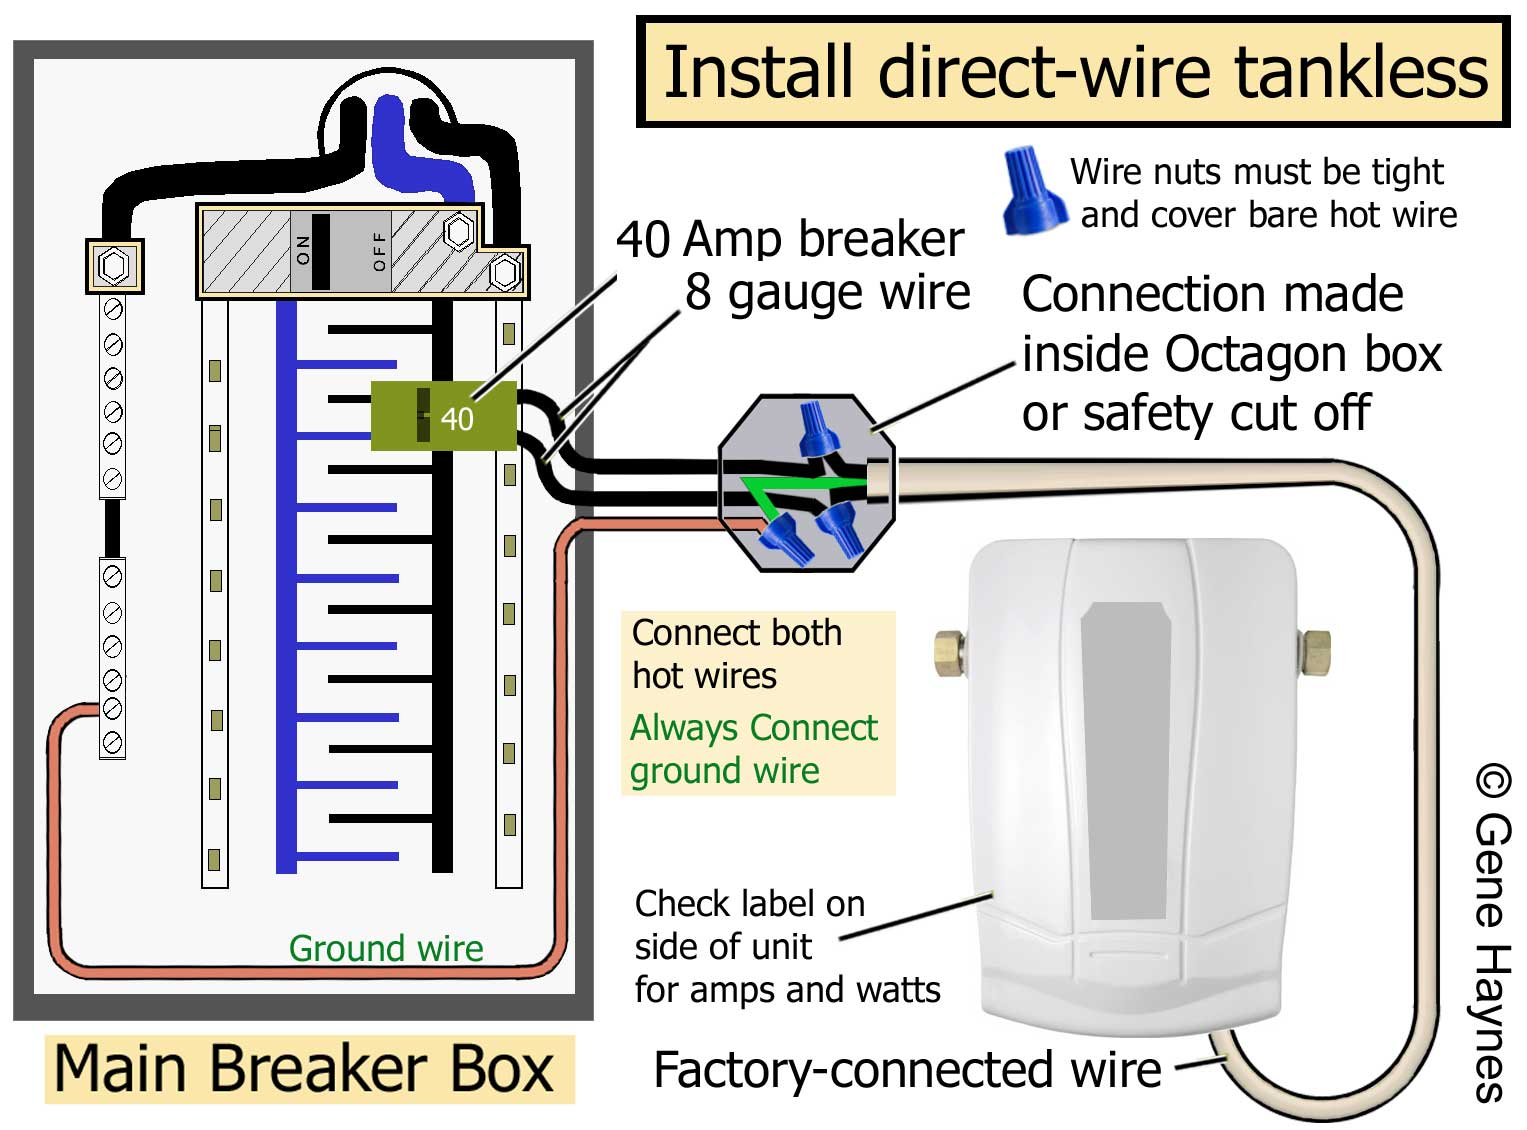 hight resolution of larger image factory connected wire or pigtail attached to tankless read rating plate on side of unit for amps and watts connect wire from breaker and